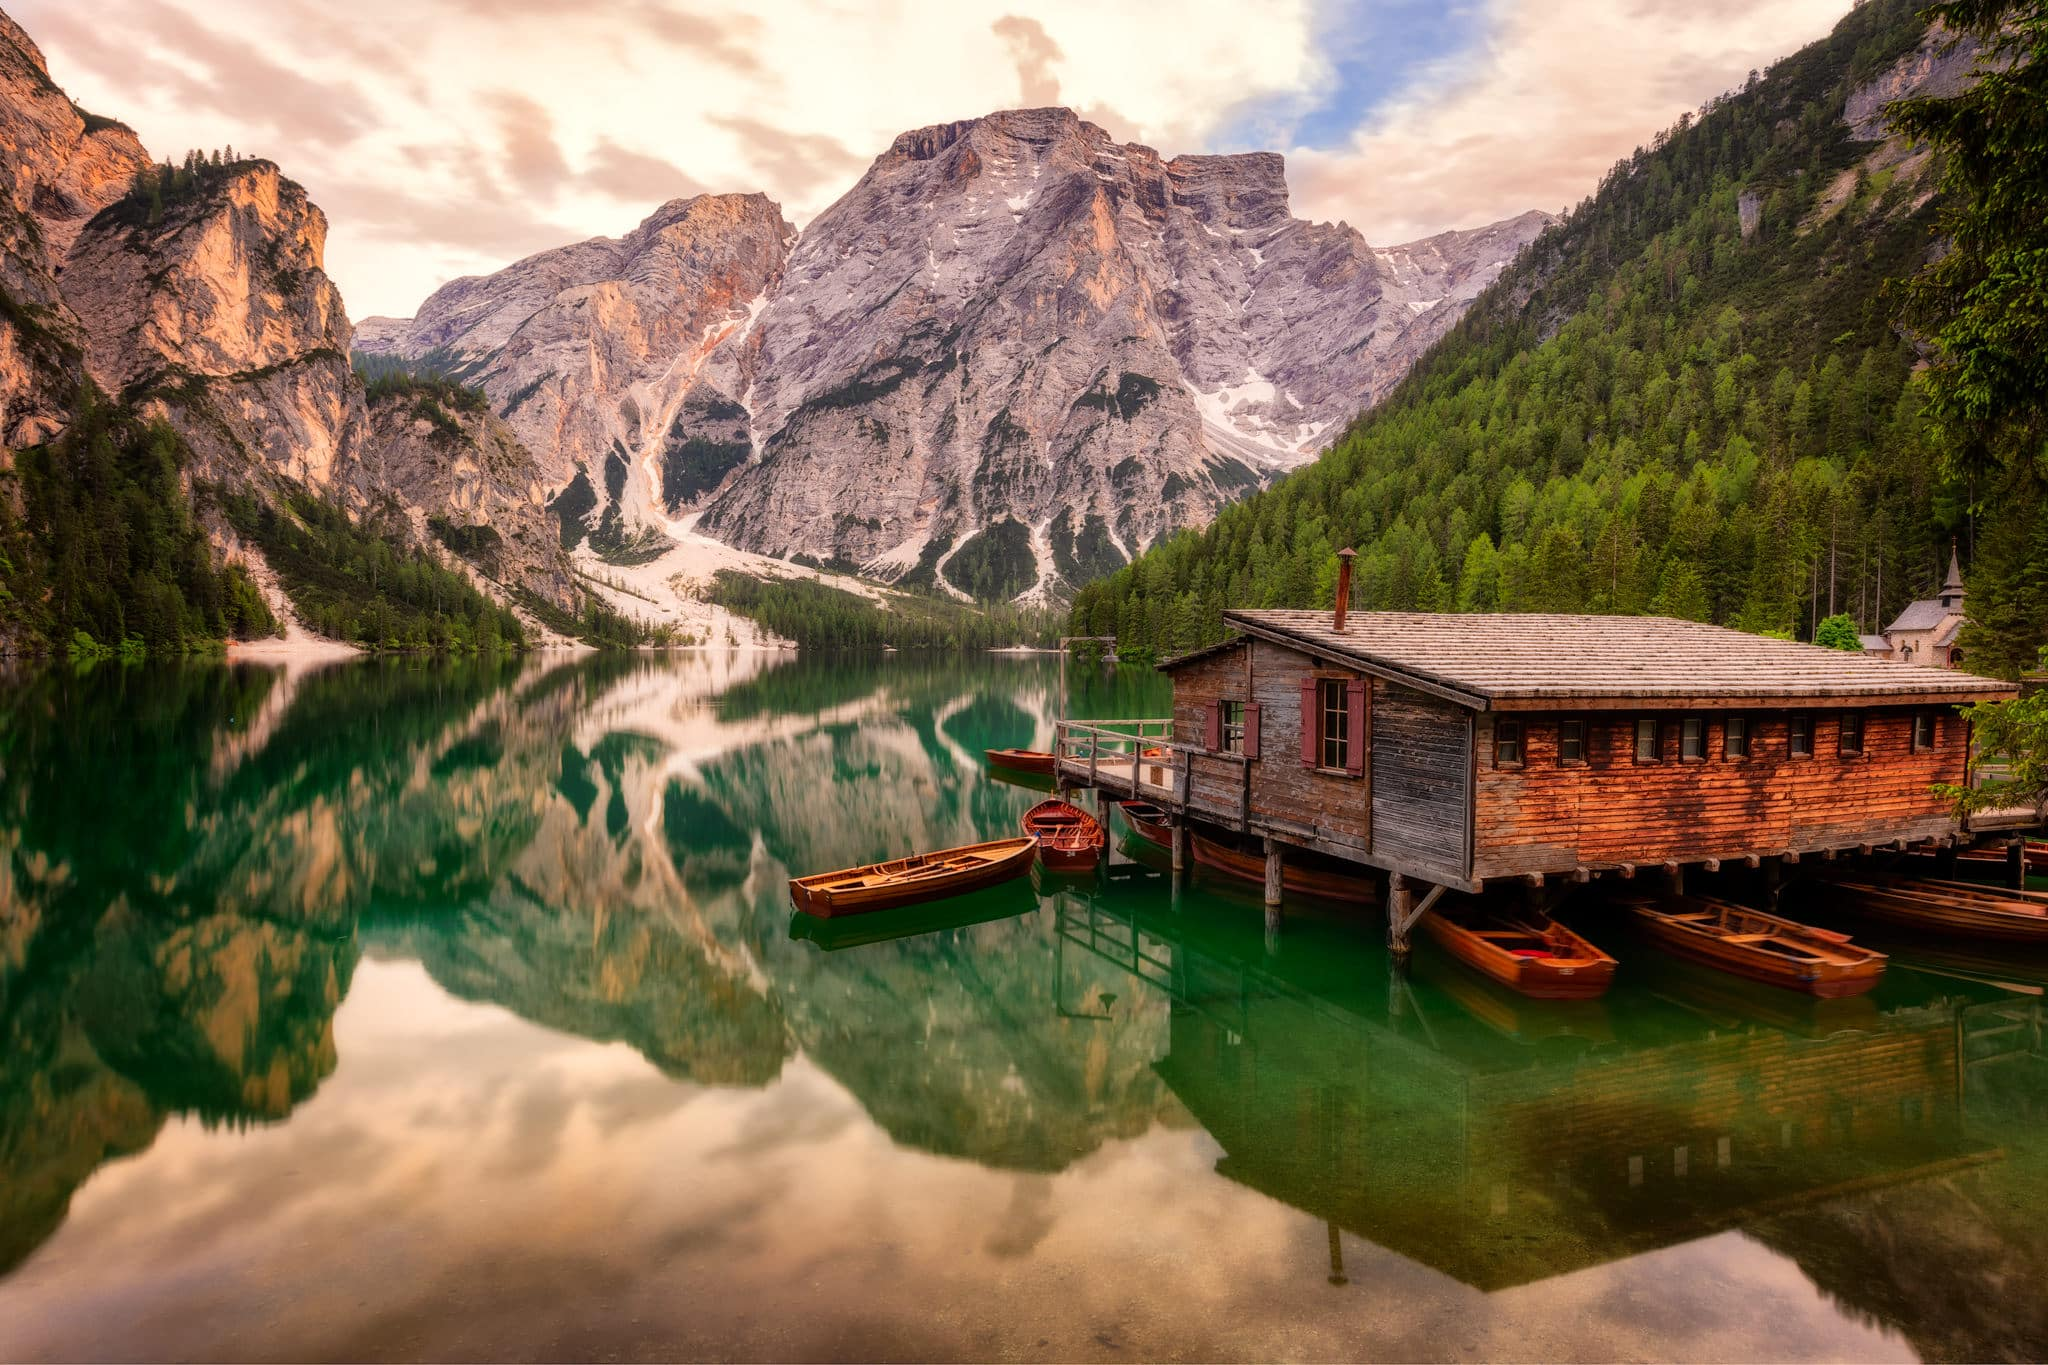 Evening at Braies Lake in the Dolomites, Italy